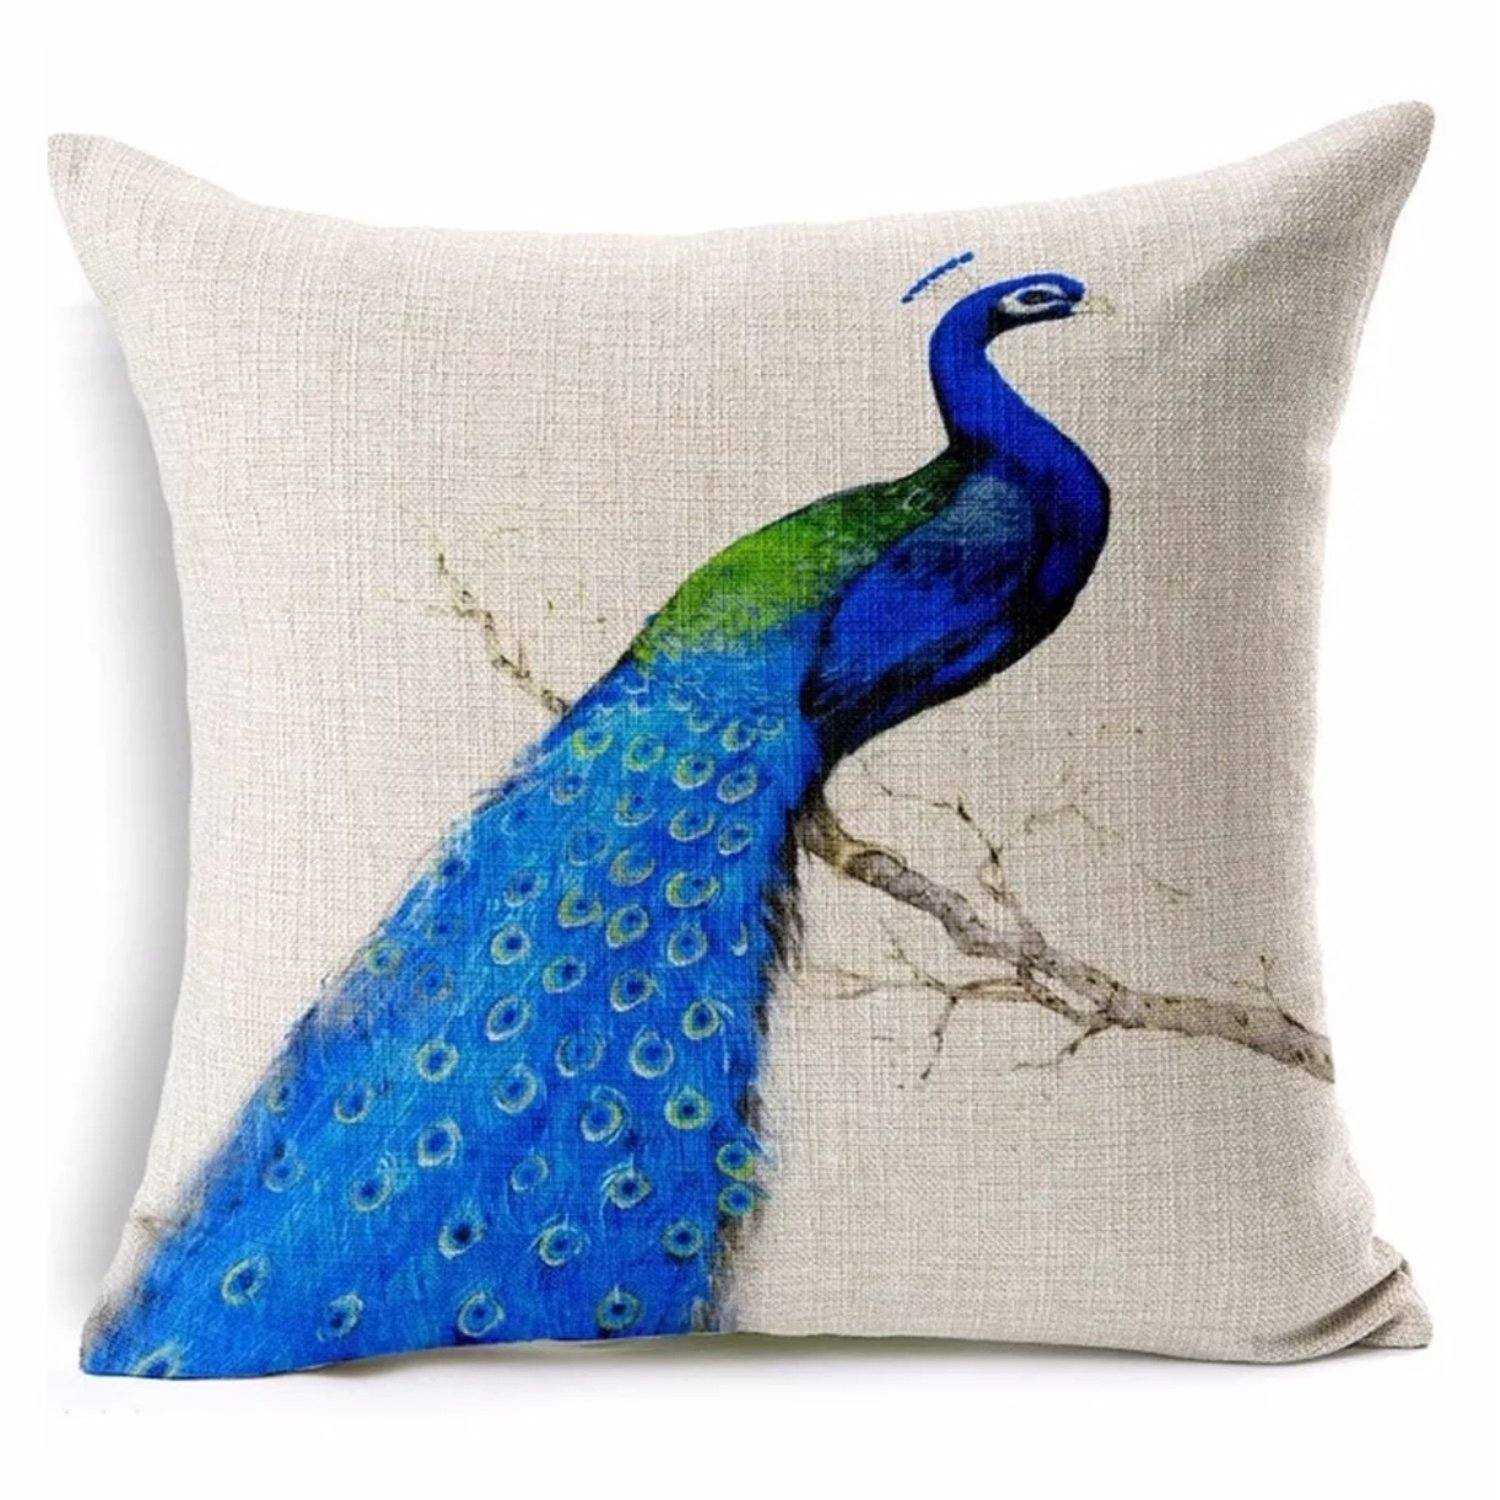 Cushion Pillow Peacock Blue & Green Bird - The Renmy Store